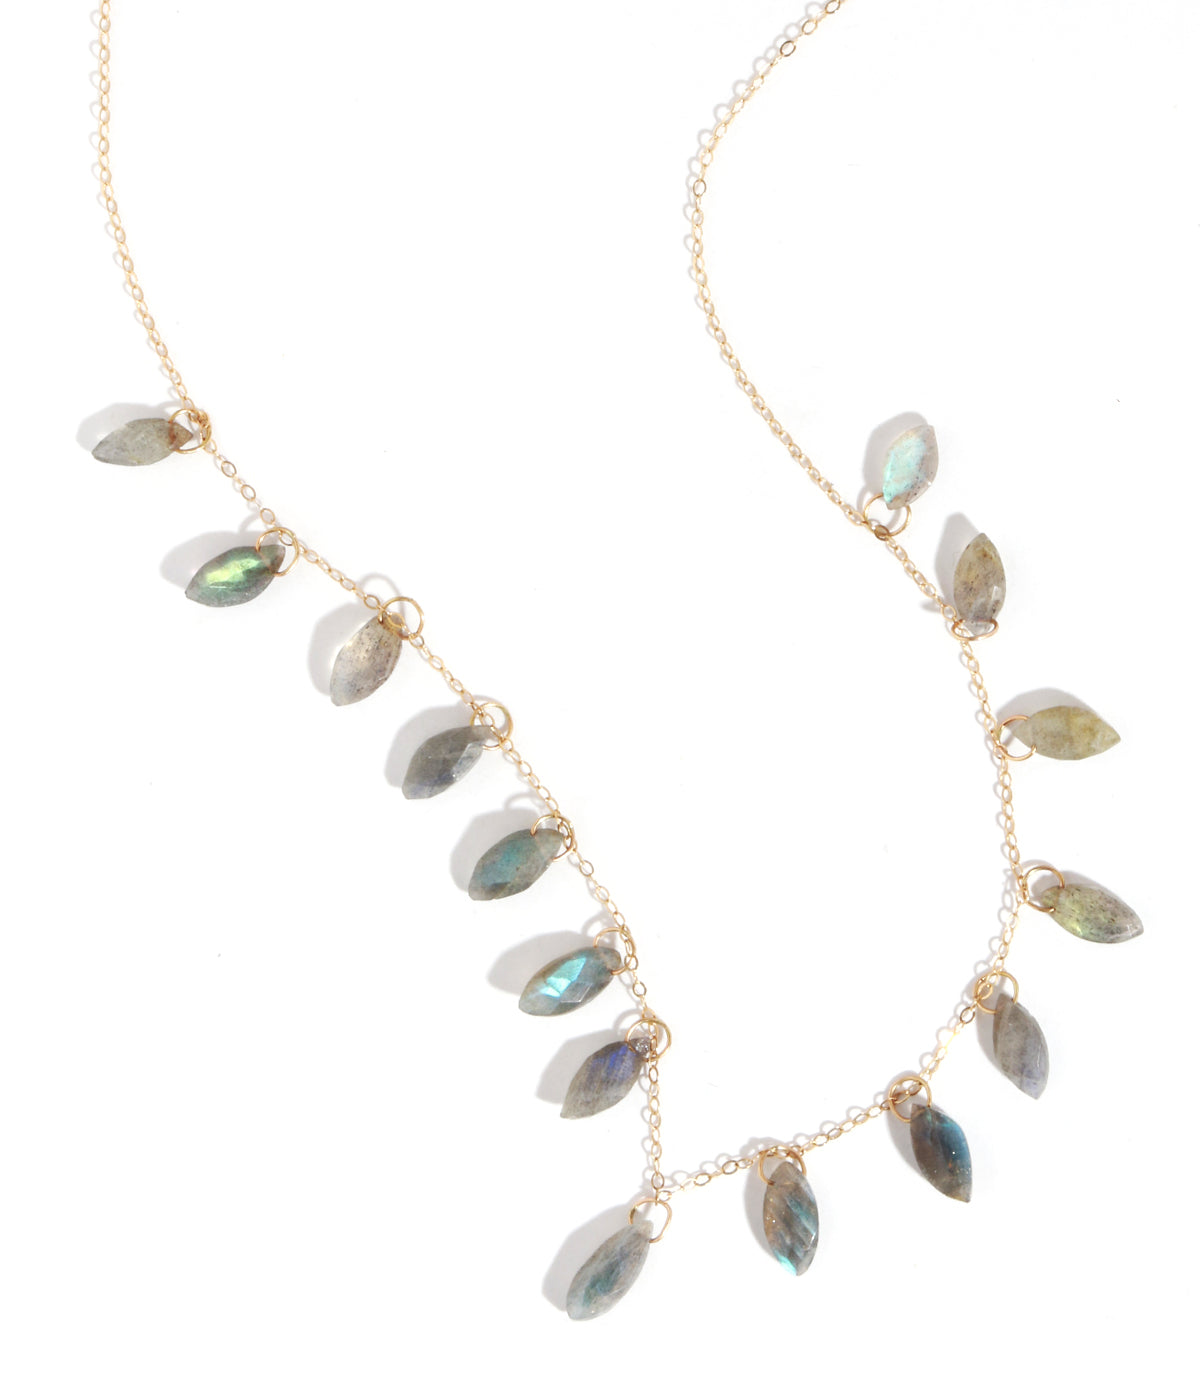 15 stone labradorite necklace - Melissa Joy Manning Jewelry